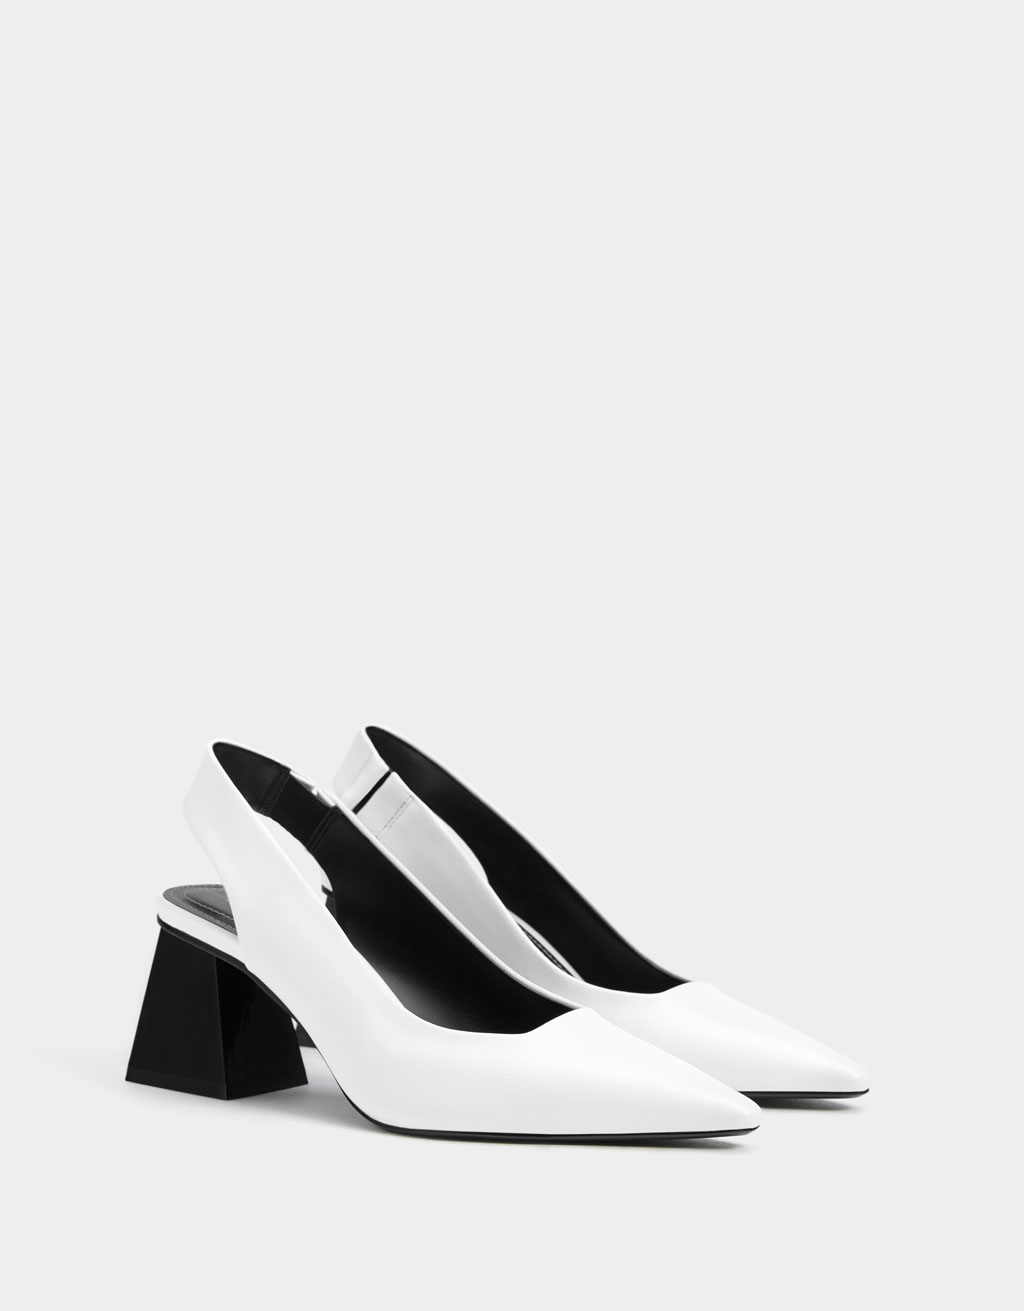 f04462d3389 Shoes - COLLECTION - WOMEN - Bershka Philippines